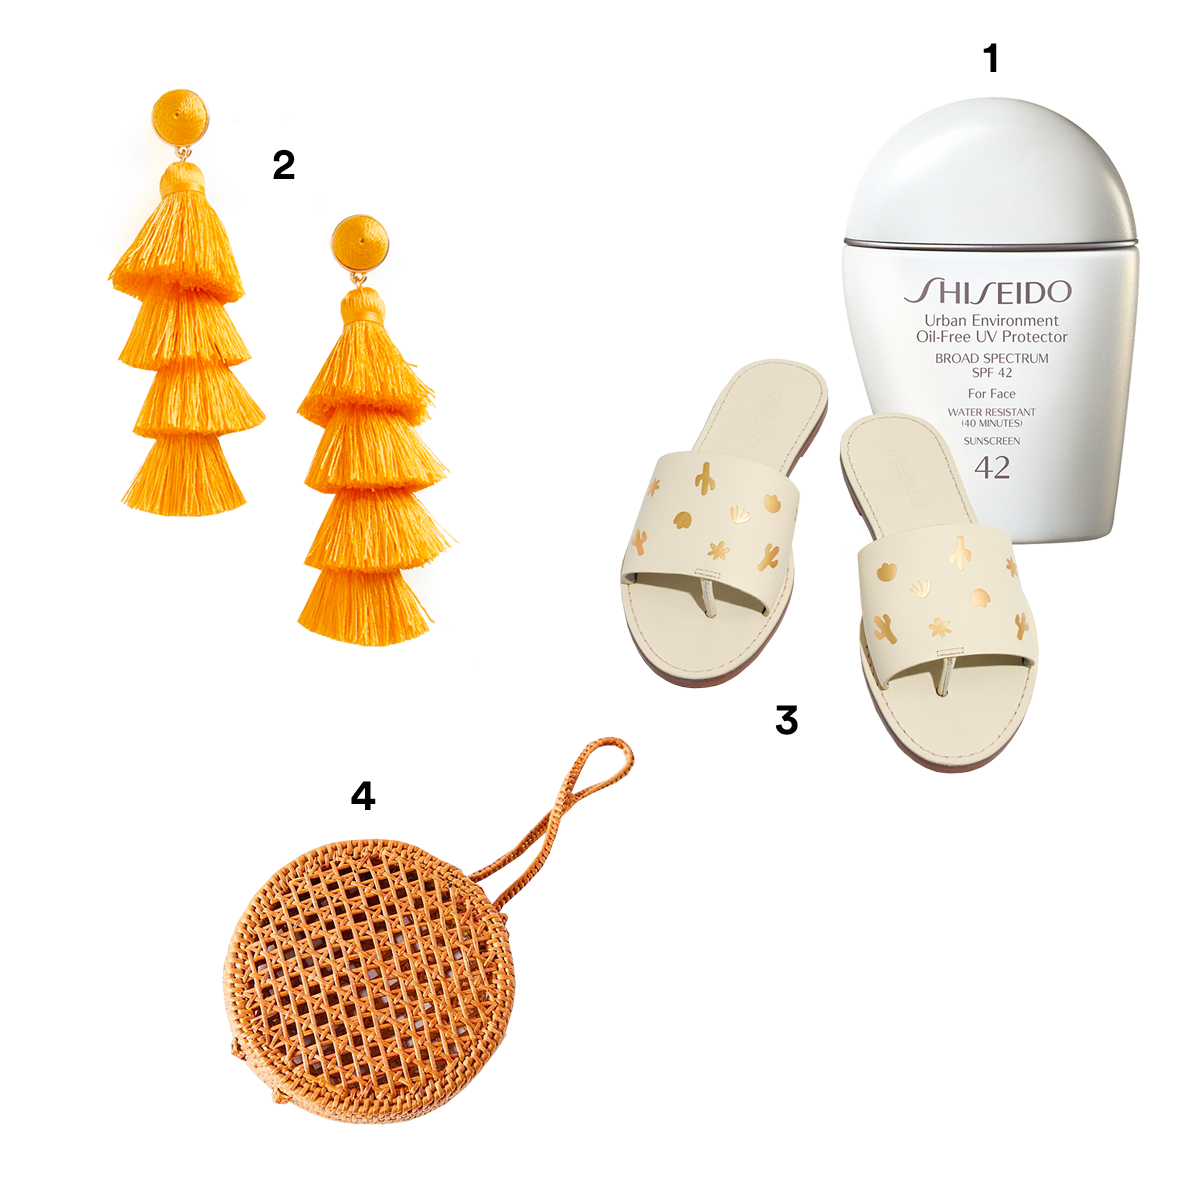 1. SHISEIDO 'Urban Environment' Oil-Free UV Protector Broad Spectrum SPF 42, available at Nordstrom. 2.) BAUBLEBAR Gabriela Fringe Earrings, available at Nordstrom. 3.) MADEWELL The Boardwalk Post Slide Sandals. 4.) URBAN OUTFITTERS Straw Mini Circle Wristlet.